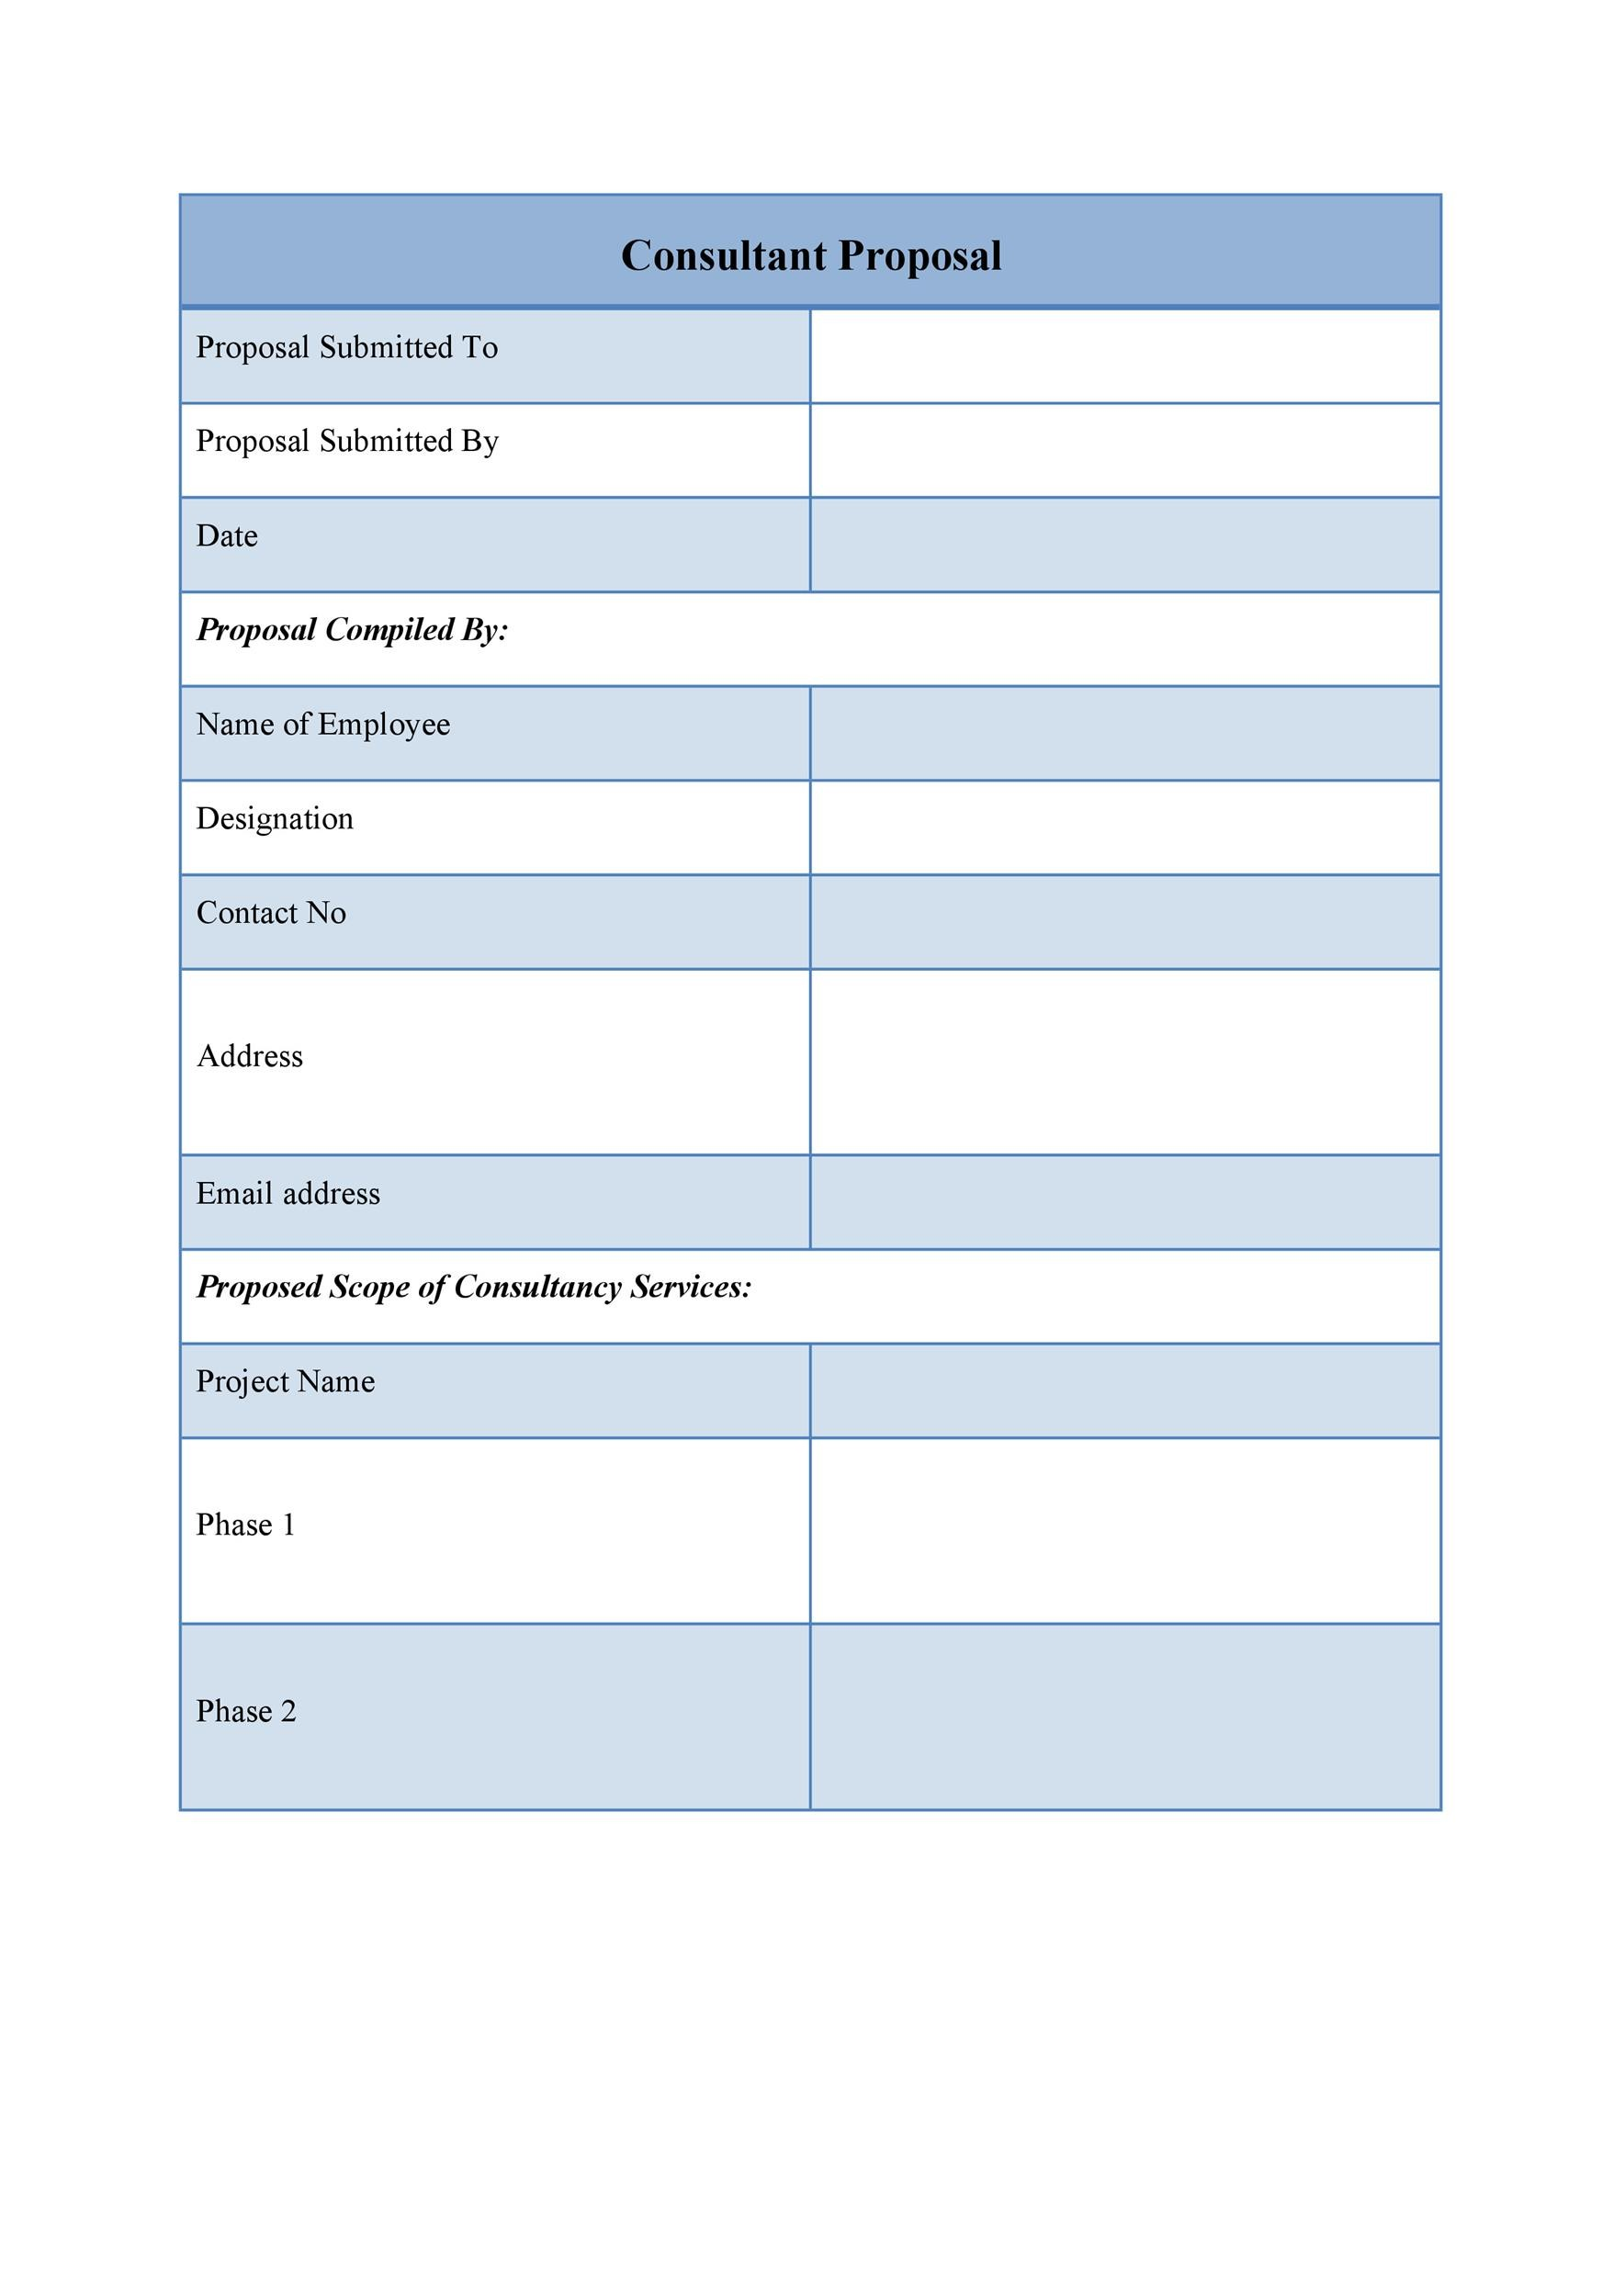 39 BEST Consulting Proposal Templates [FREE]